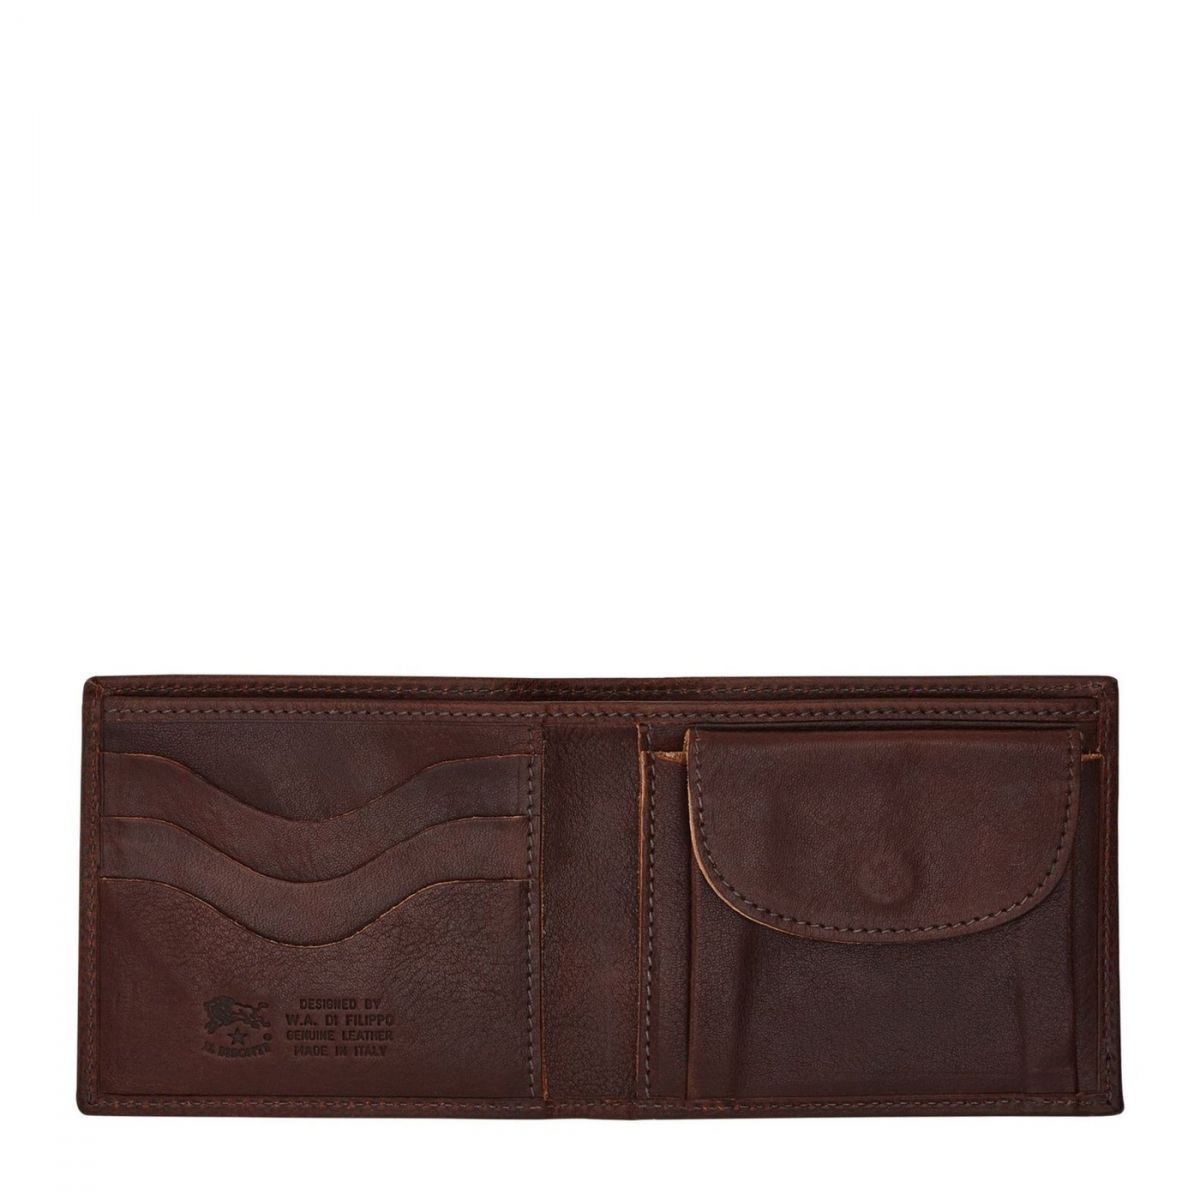 Men's Bi-Fold Wallet in Vintage Cowhide Leather SBW007 color Dark Brown | Details